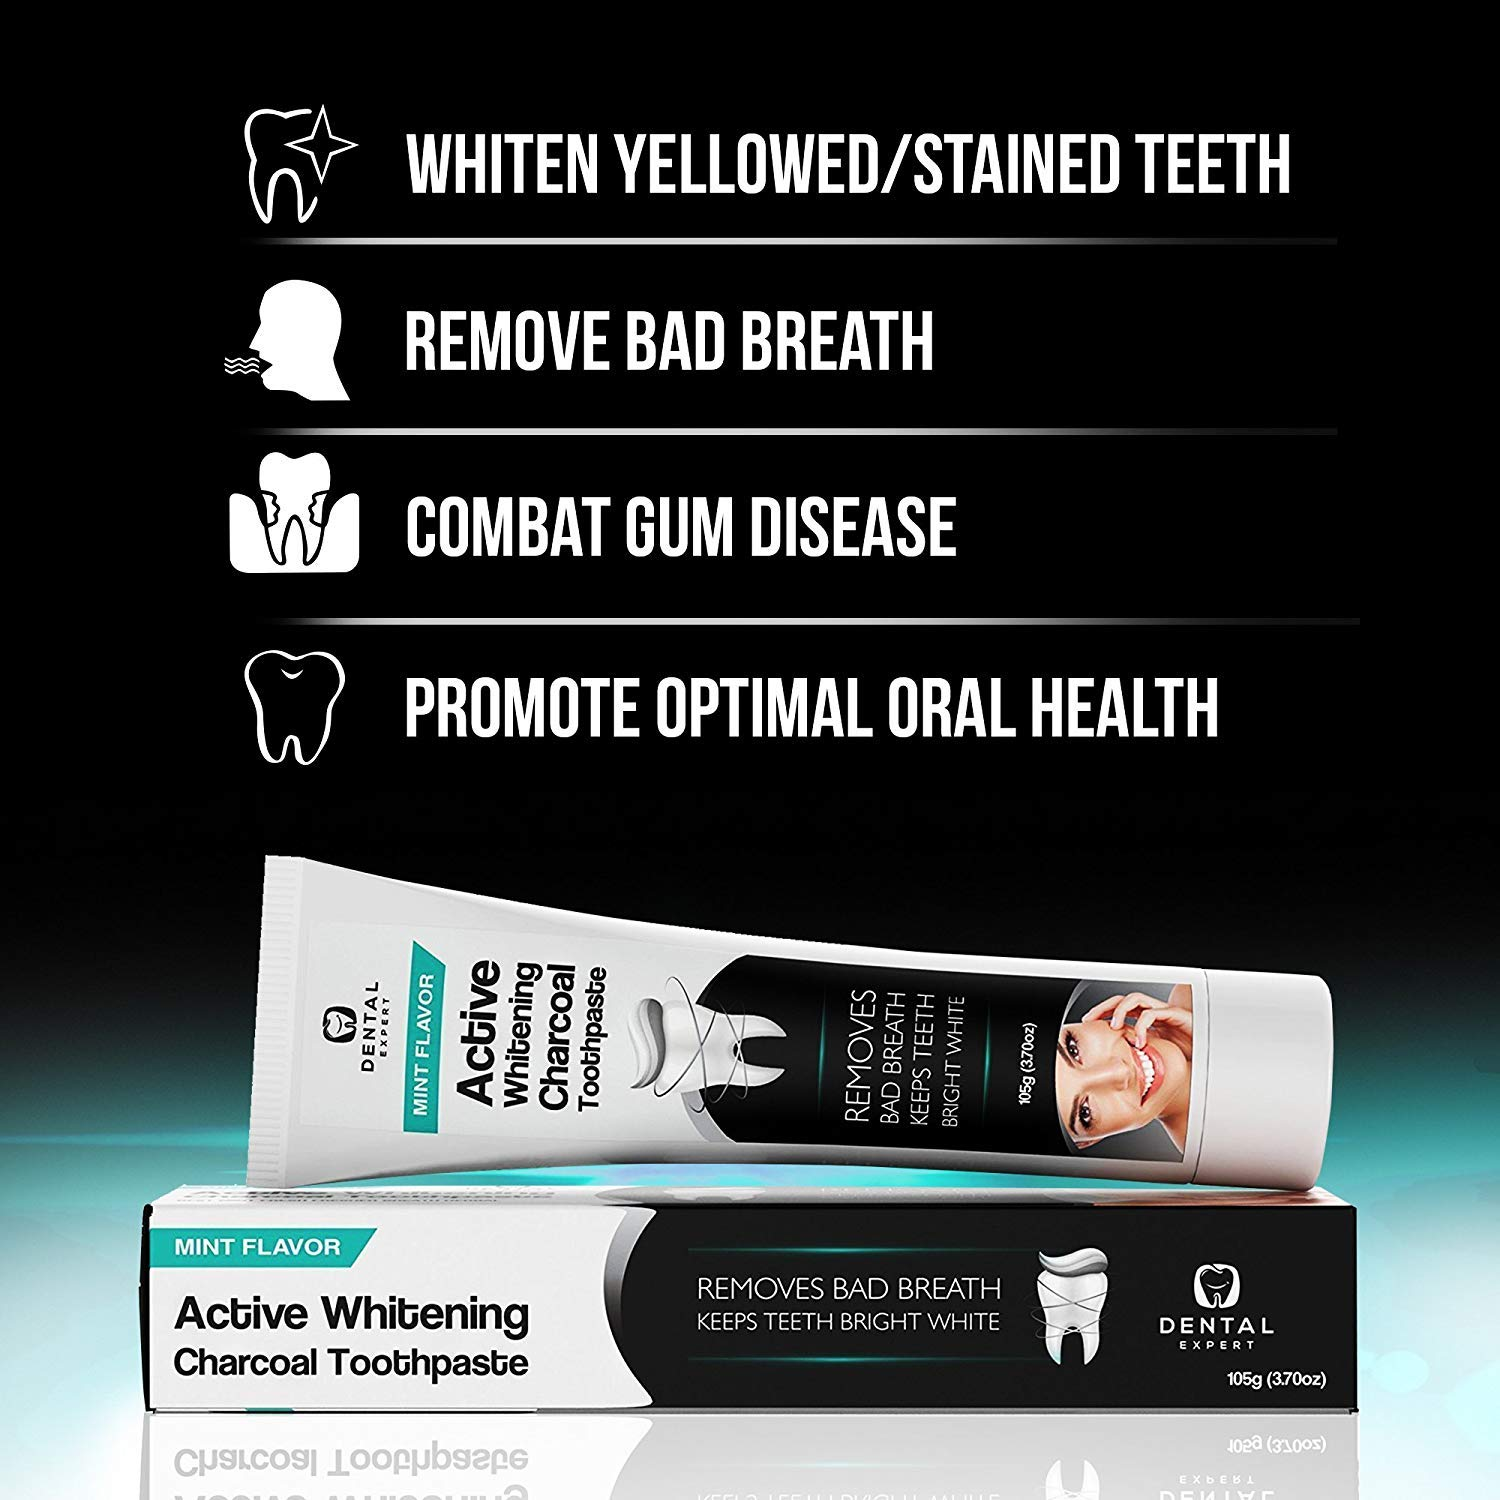 Activated Charcoal Teeth Whitening Toothpaste - DESTROYS BAD BREATH - Best Natural Black Tooth Paste Kit - MINT FLAVOR - Herbal Decay Treatment - REMOVES COFFEE STAINS - 105g (3.7 Fl Oz)